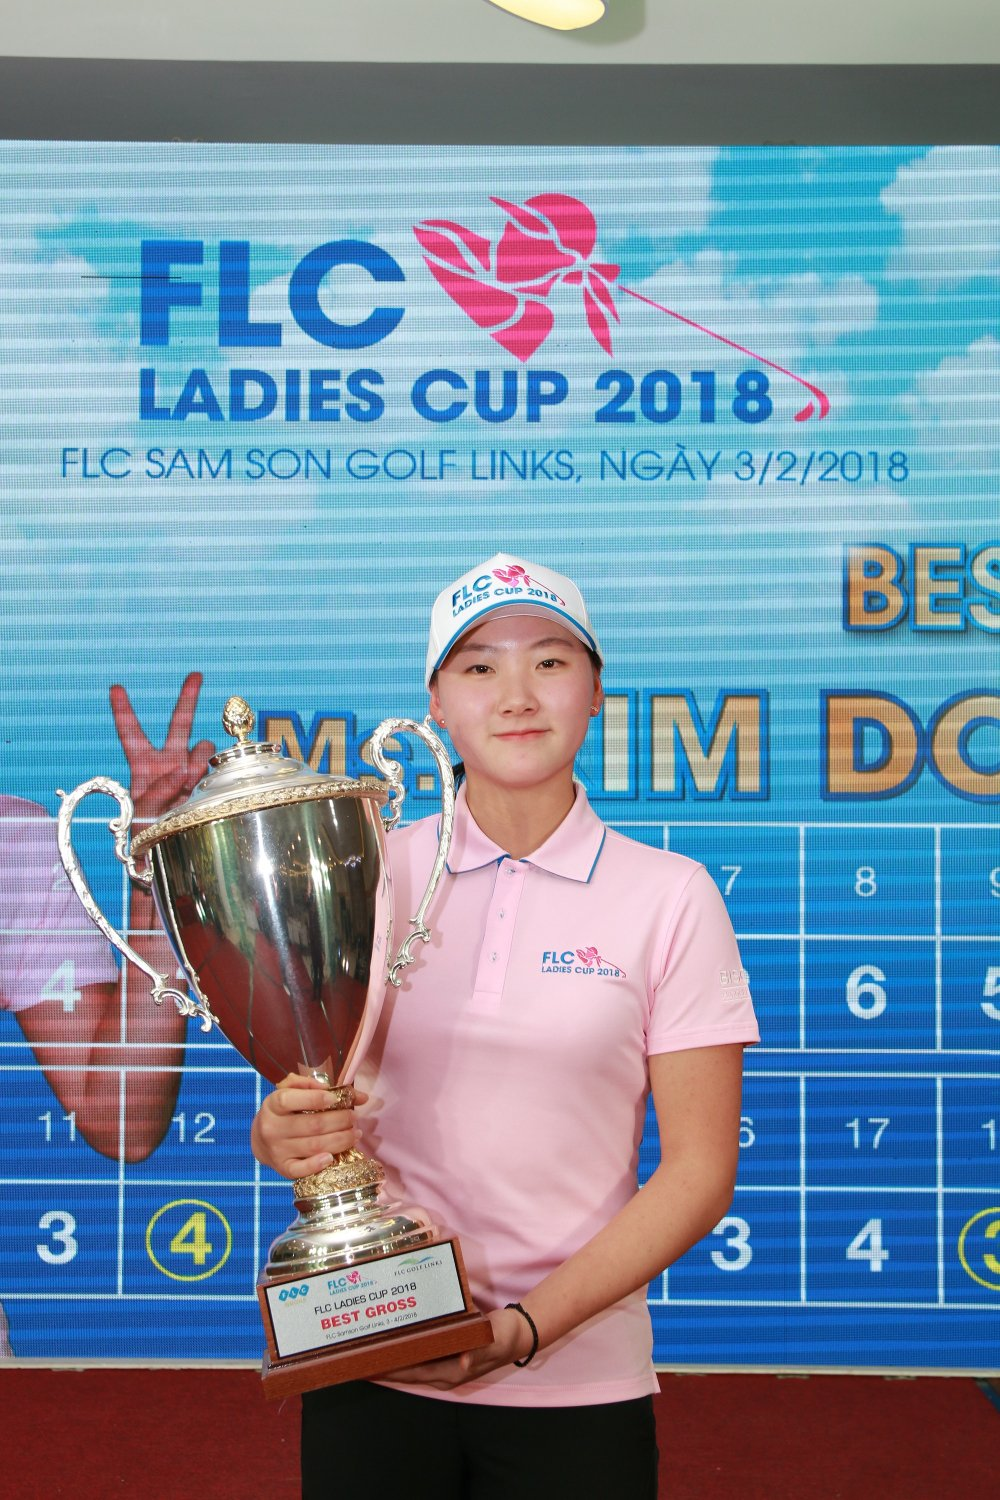 Gon thu 17 tuoi nguoi Han Quoc vo dich giai FLC Ladies Cup 2018 hinh anh 2